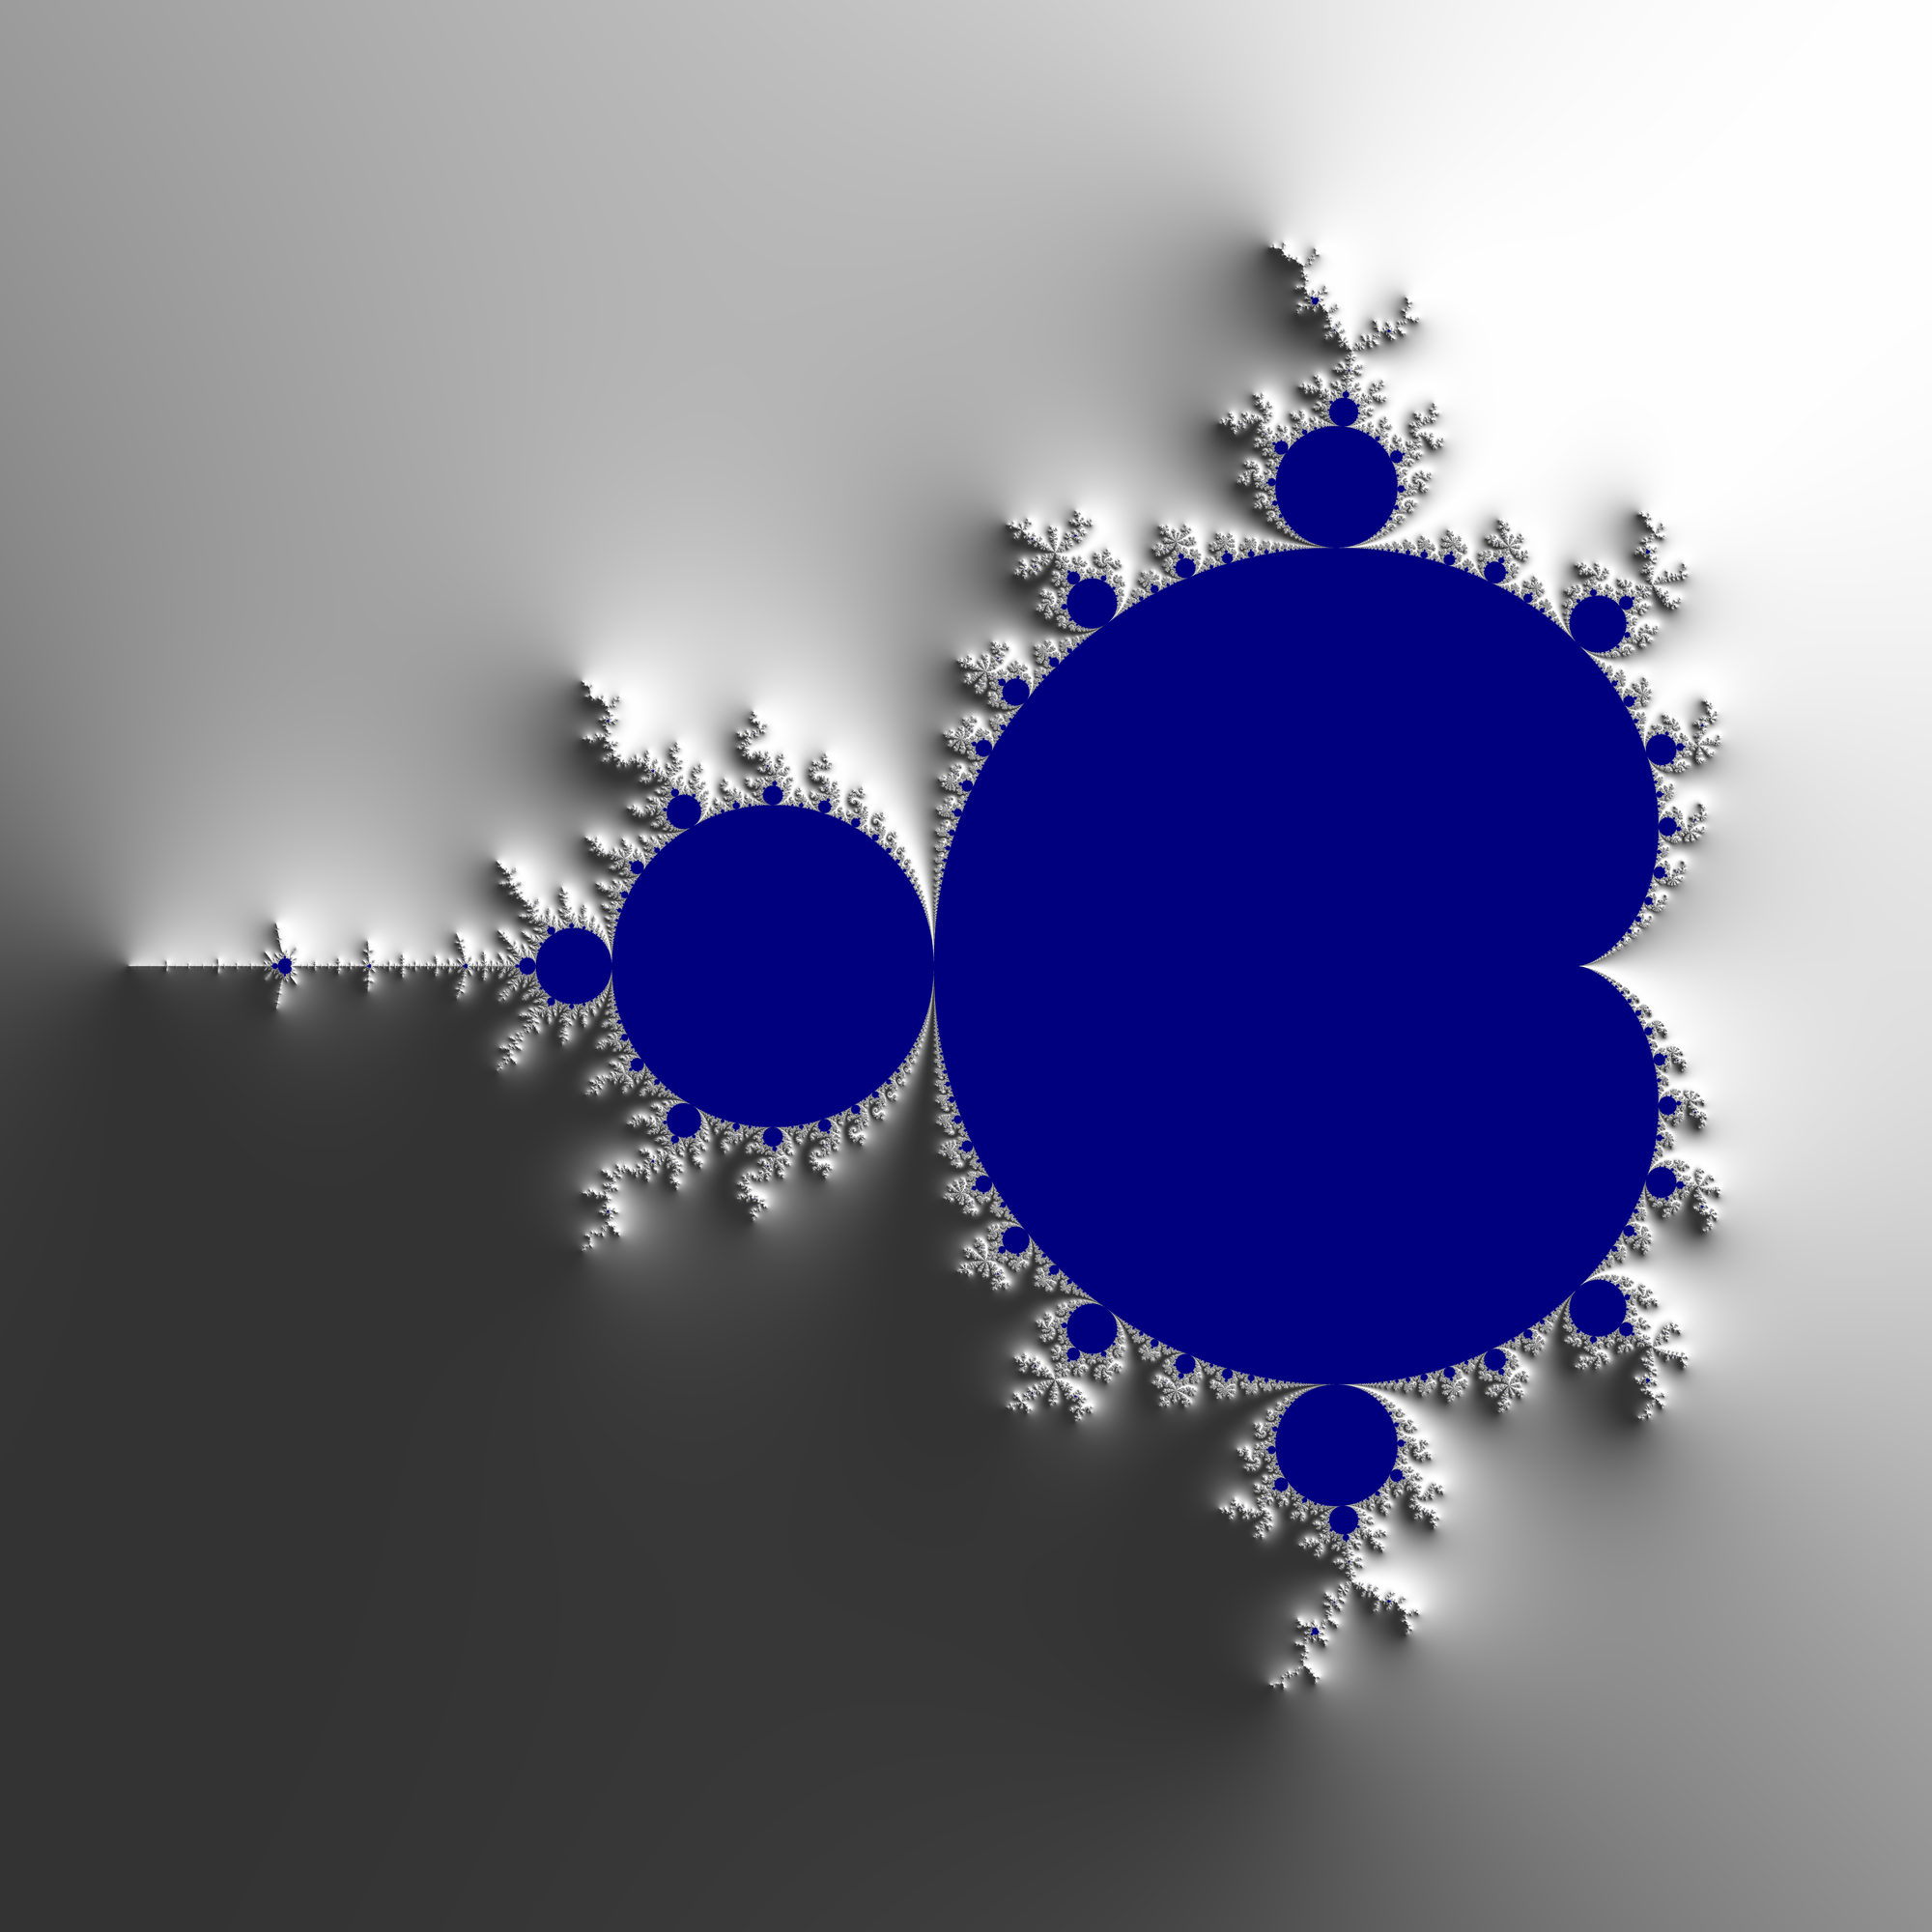 File:Mandelbrot set - Normal mapping png - Wikimedia Commons